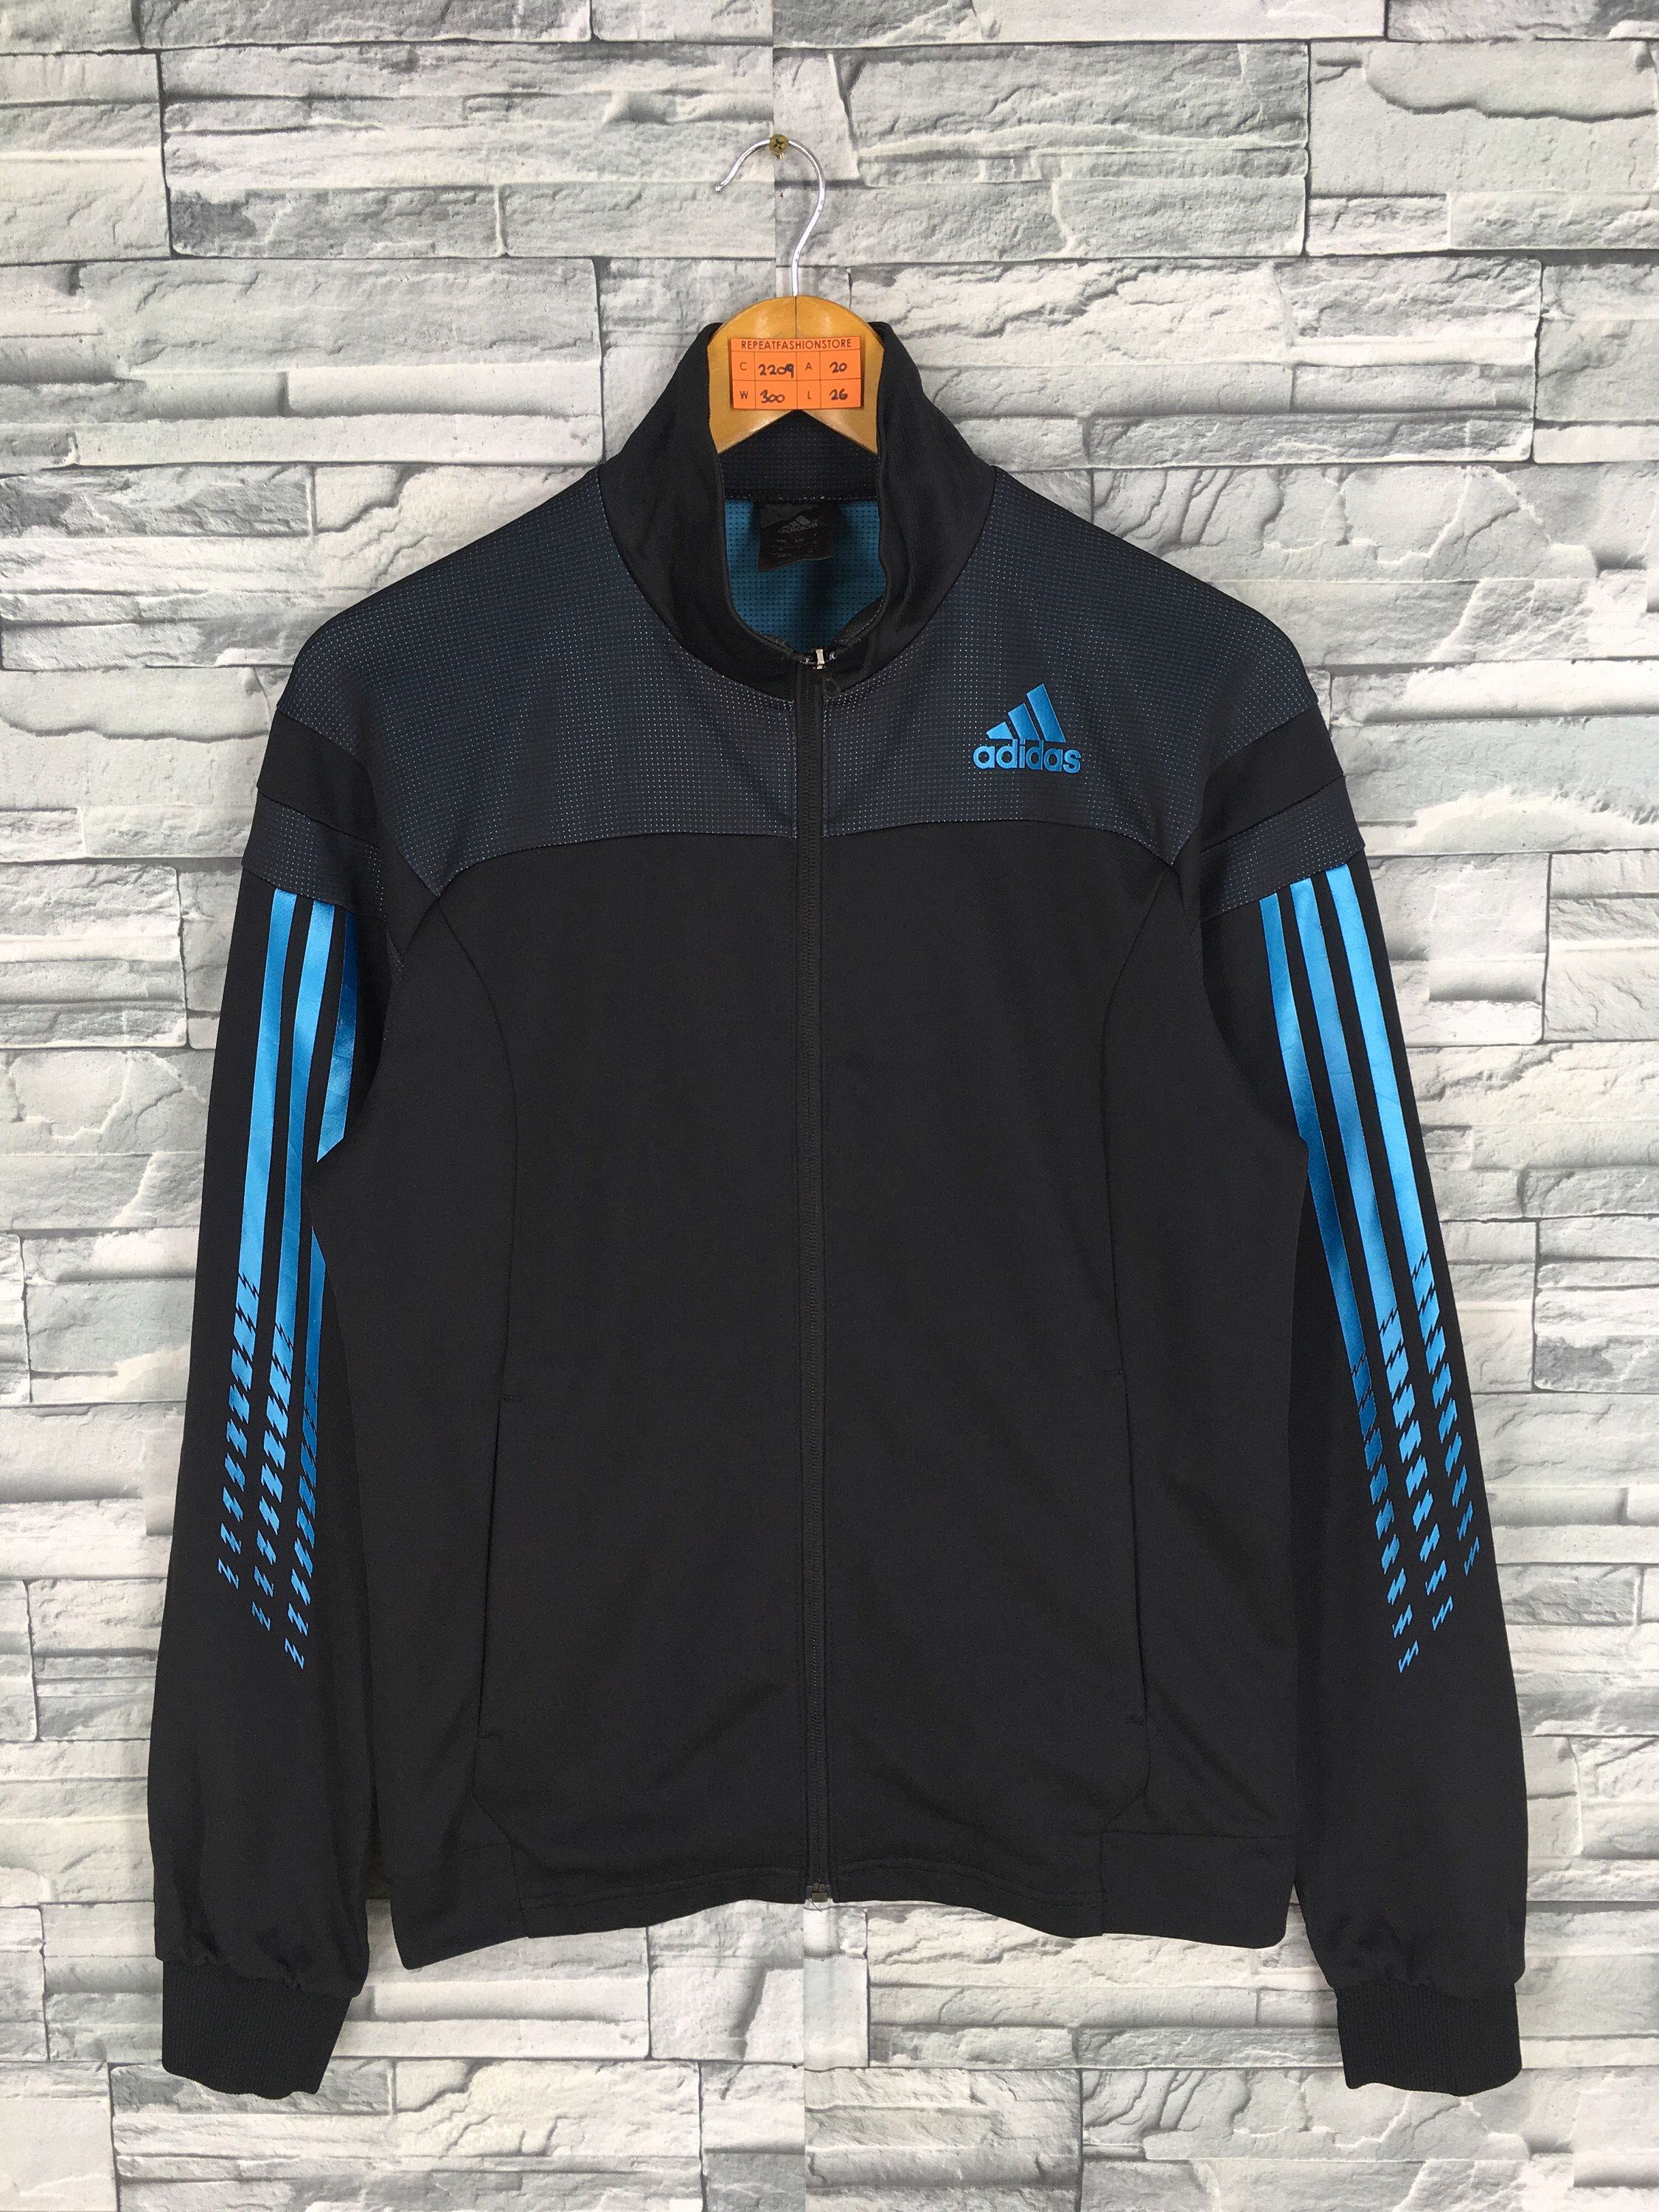 ADIDAS Equipment Track Top Jacket Medium Ladies Vintage 90's